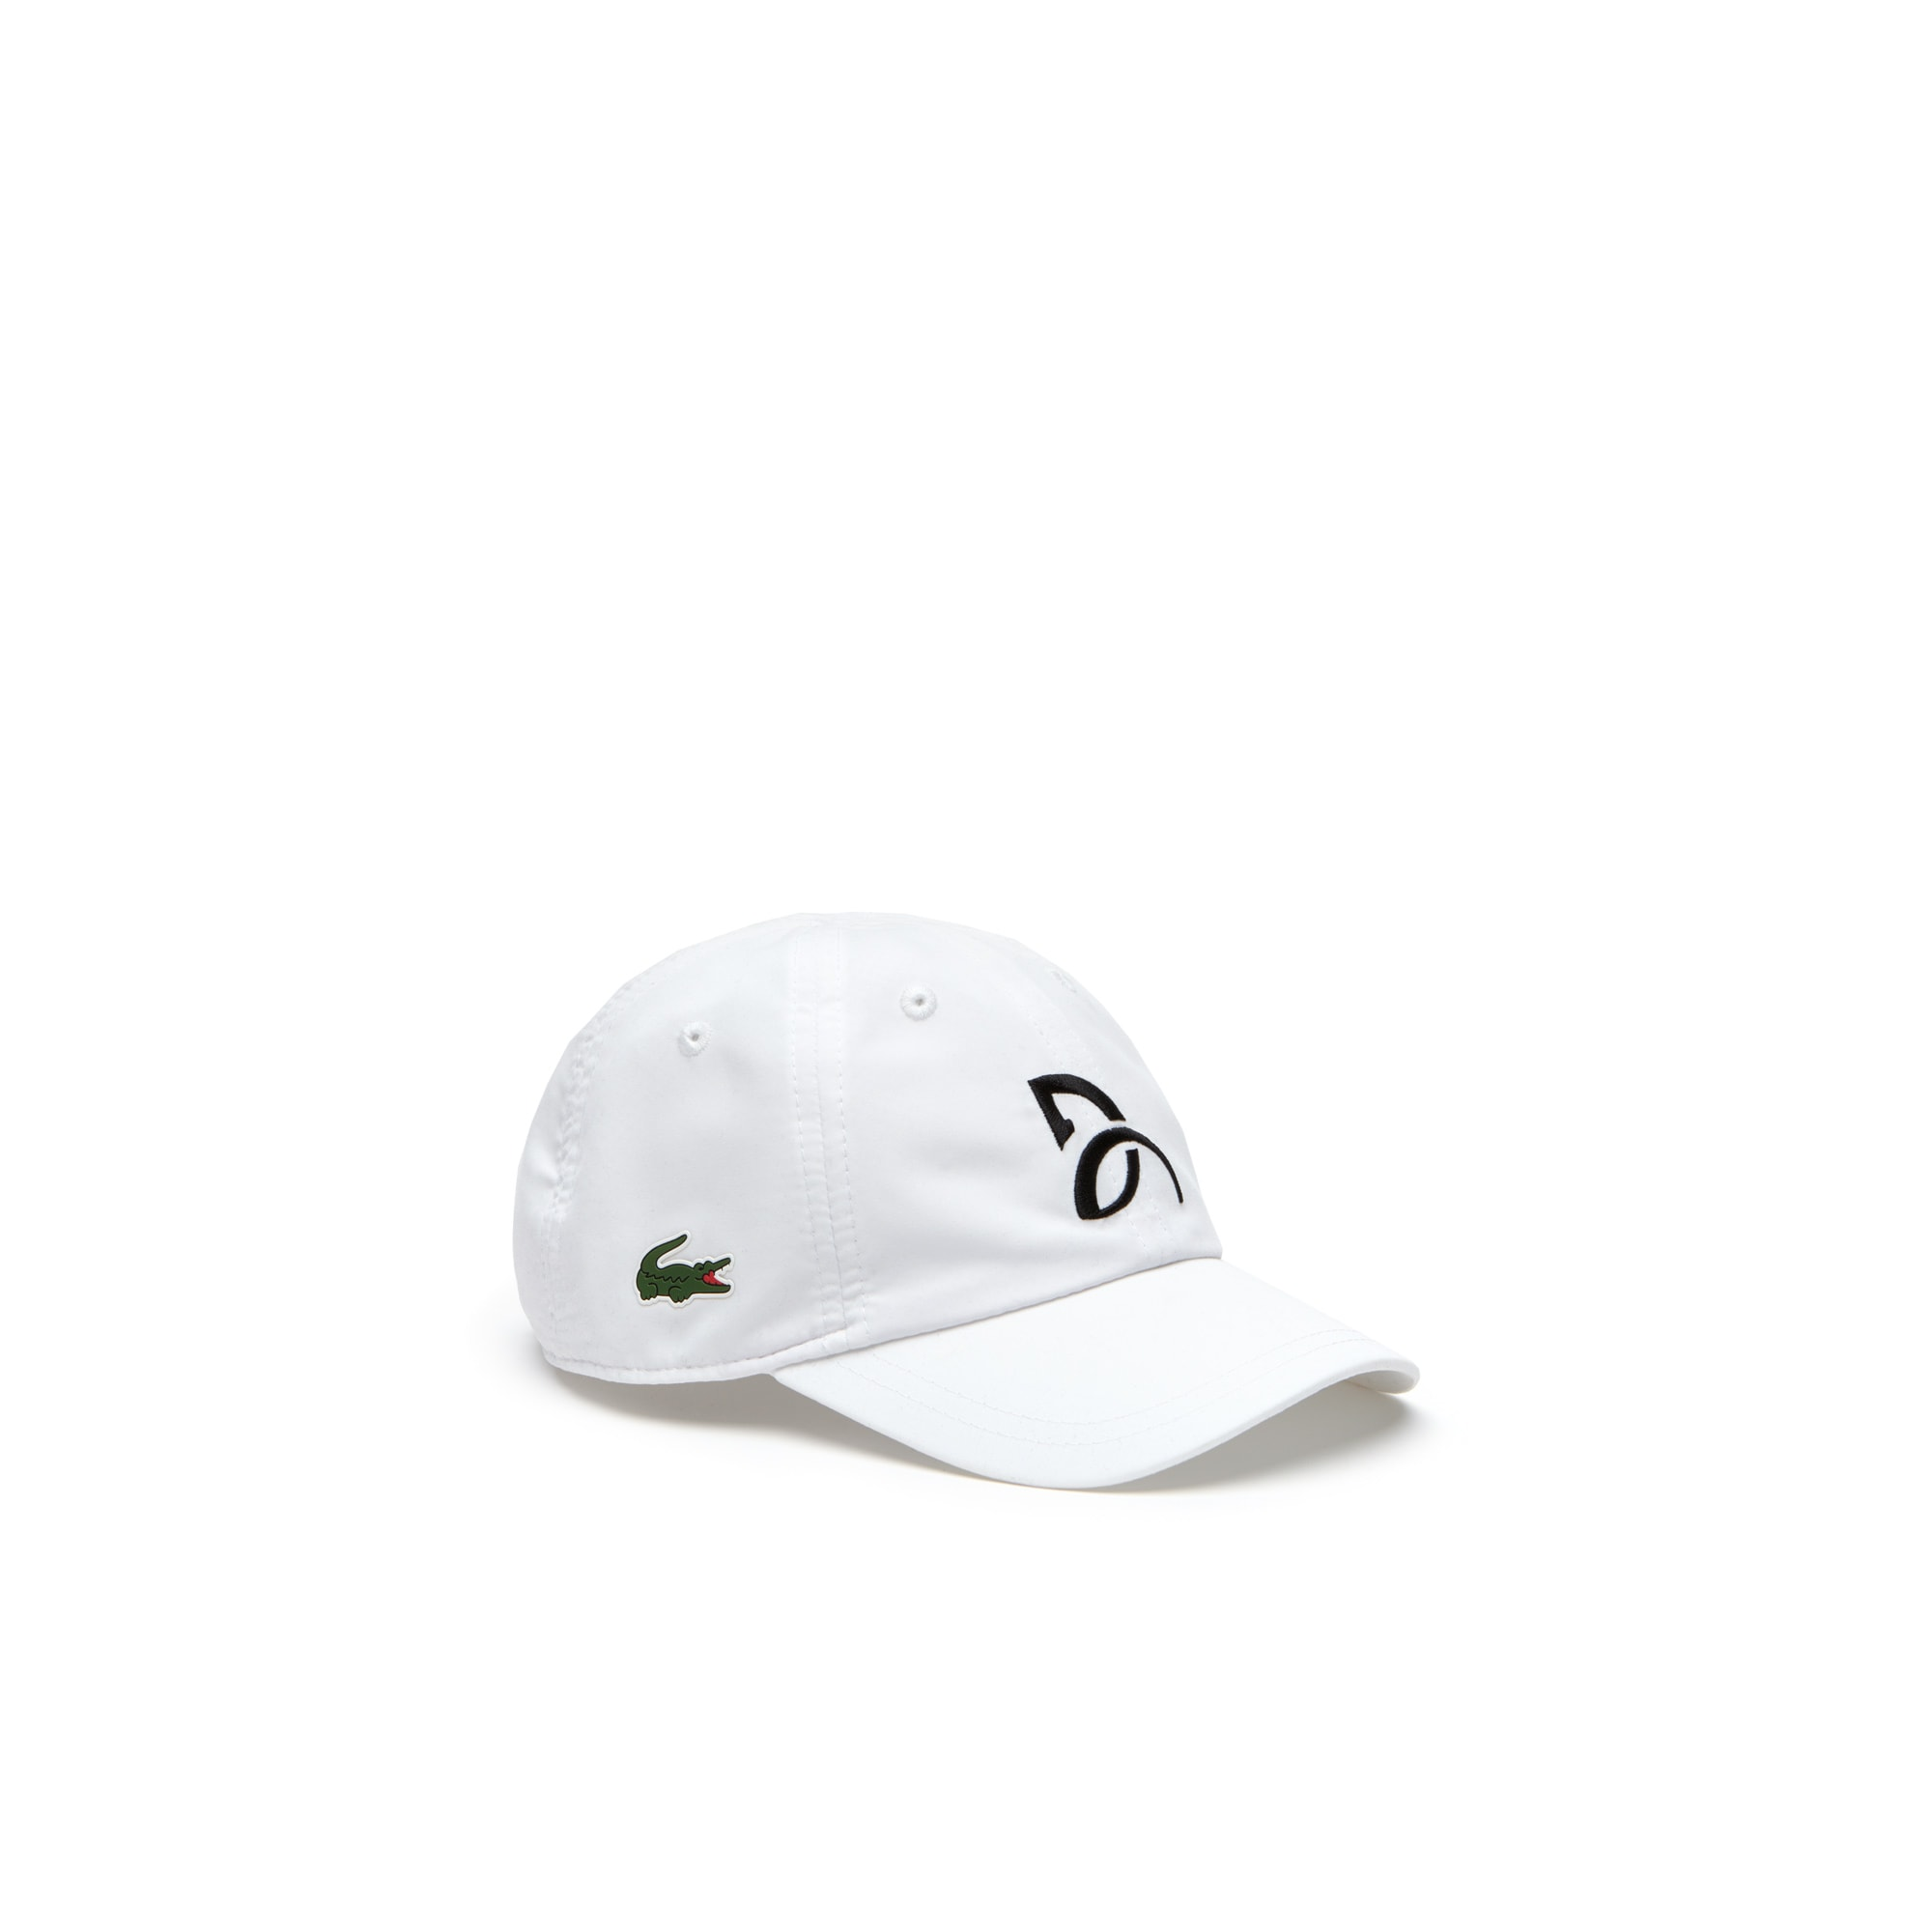 Gorra De Niño Lacoste Sport Collection Novak Djokovic Support With Style De  Microfibra ... 04b383dd78c